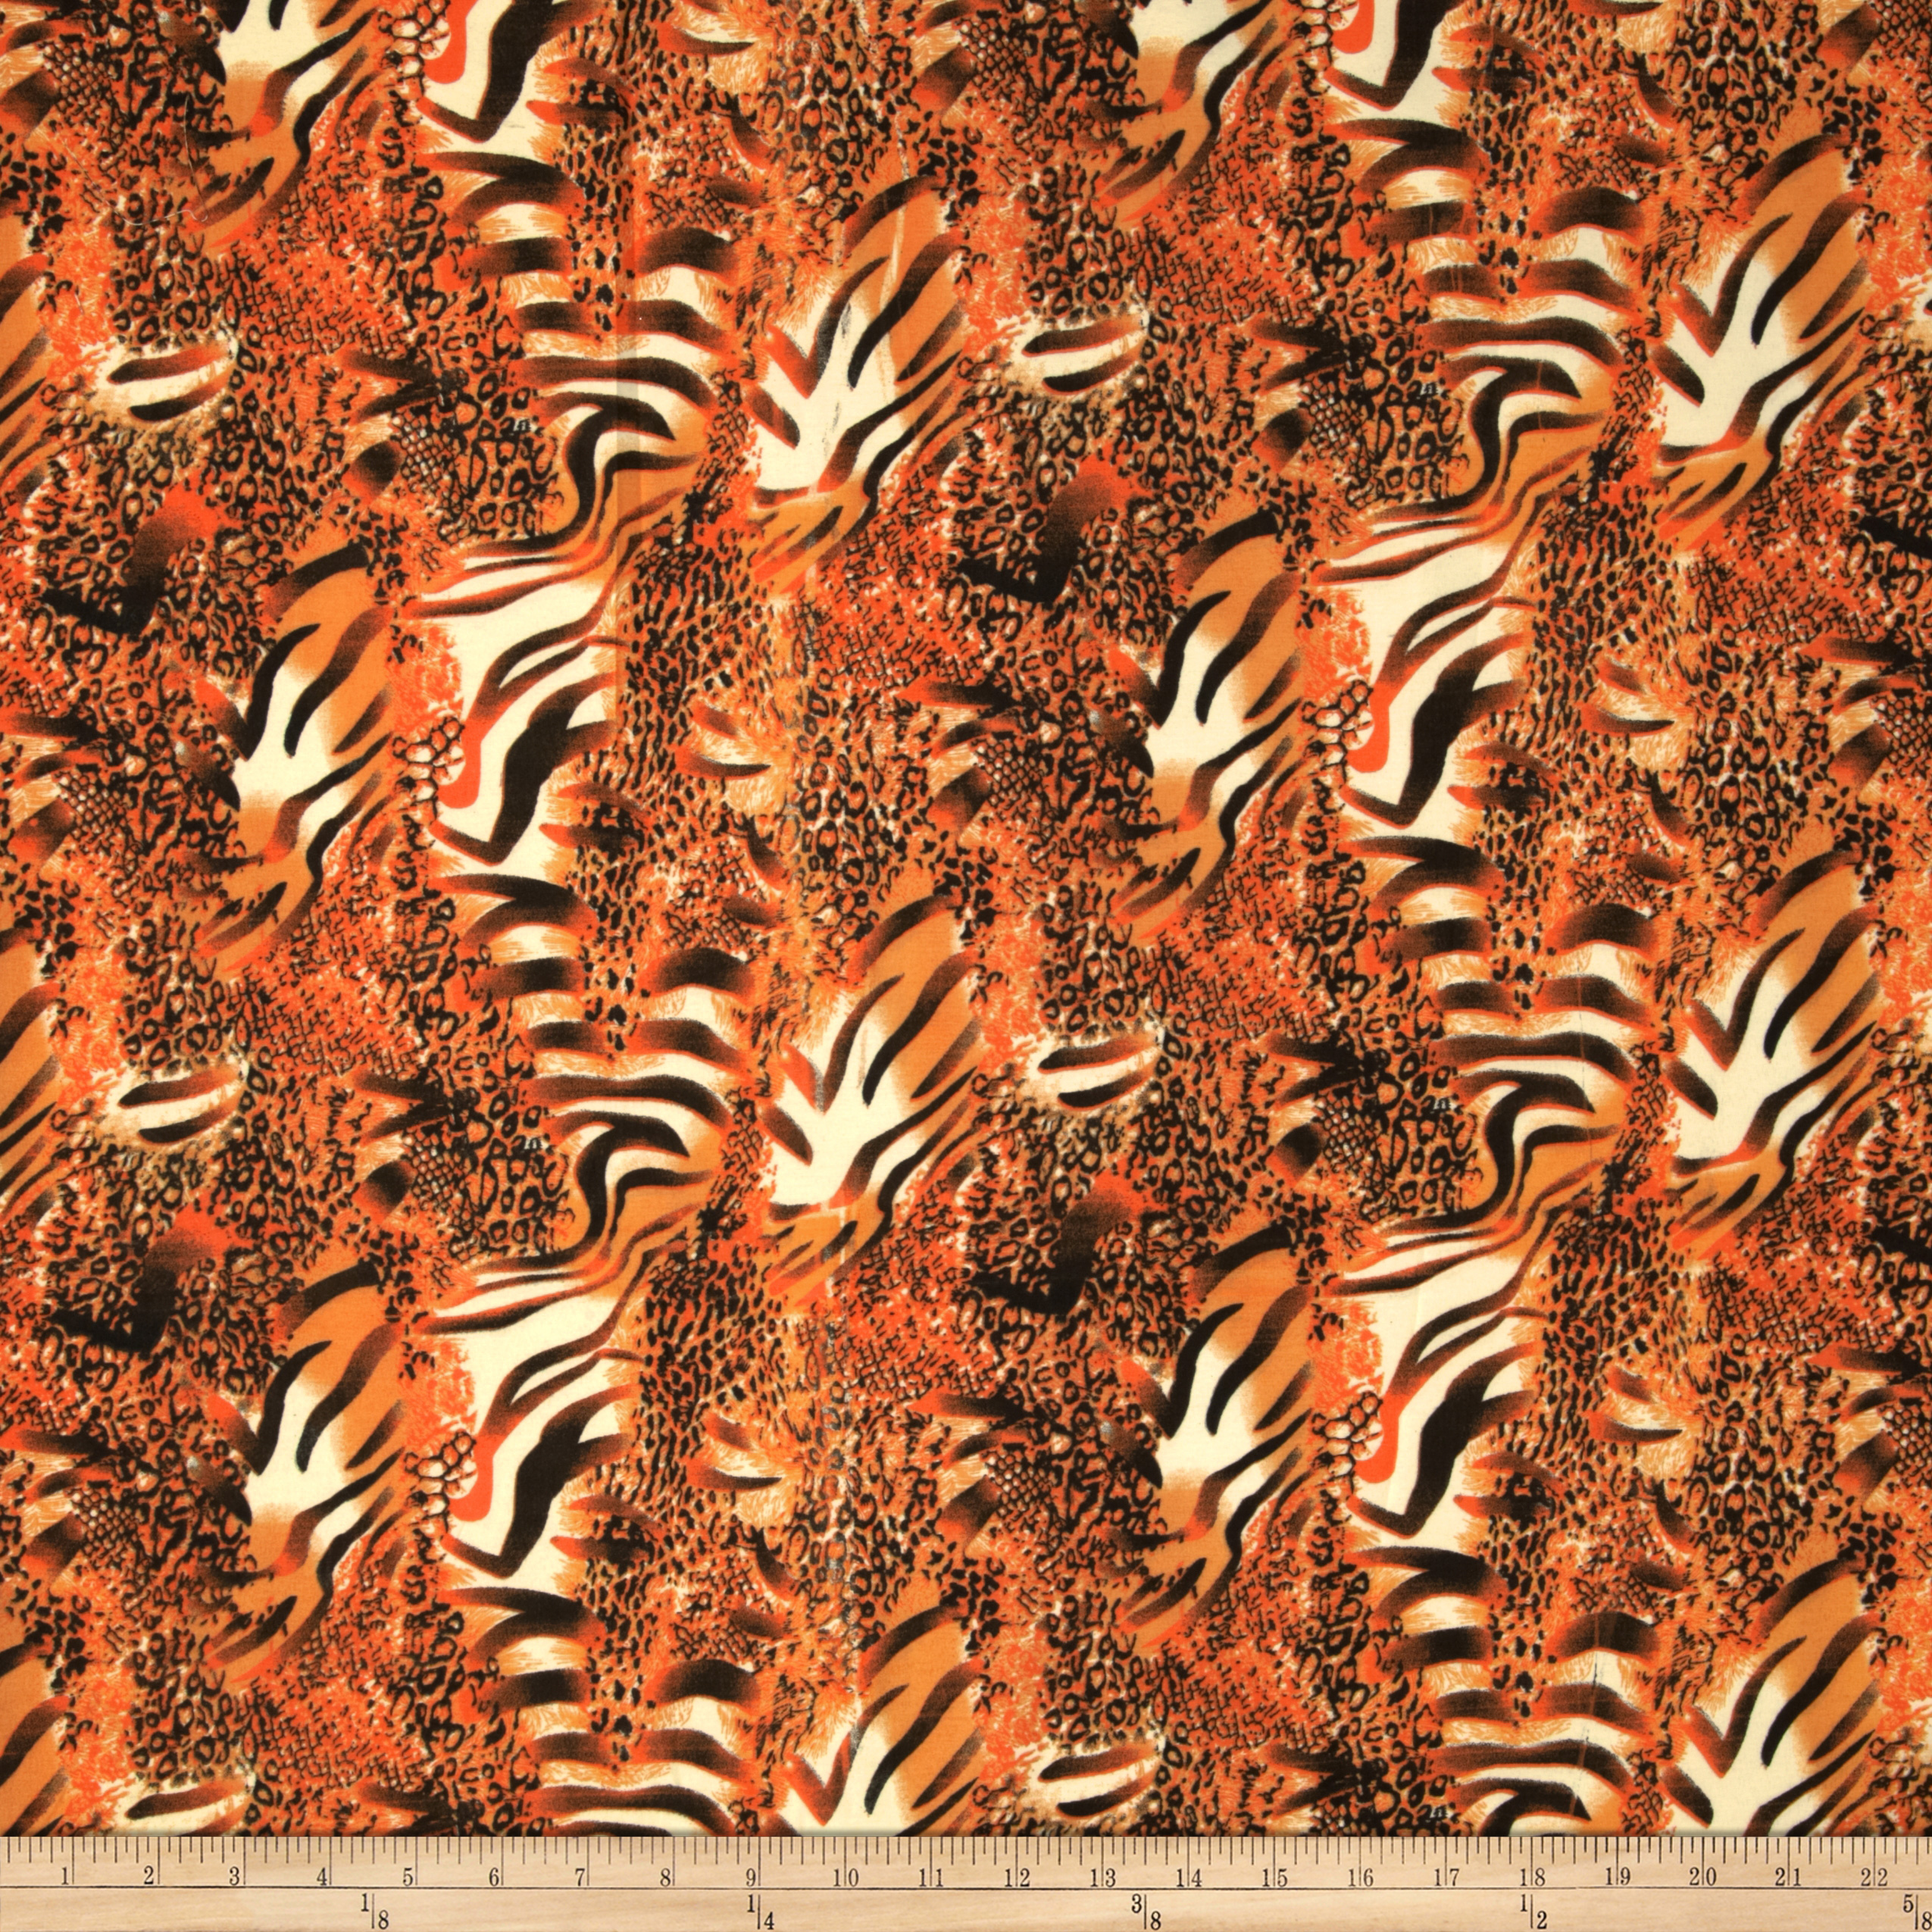 Jungle Safari Broadcloth Animal Orange Fabric